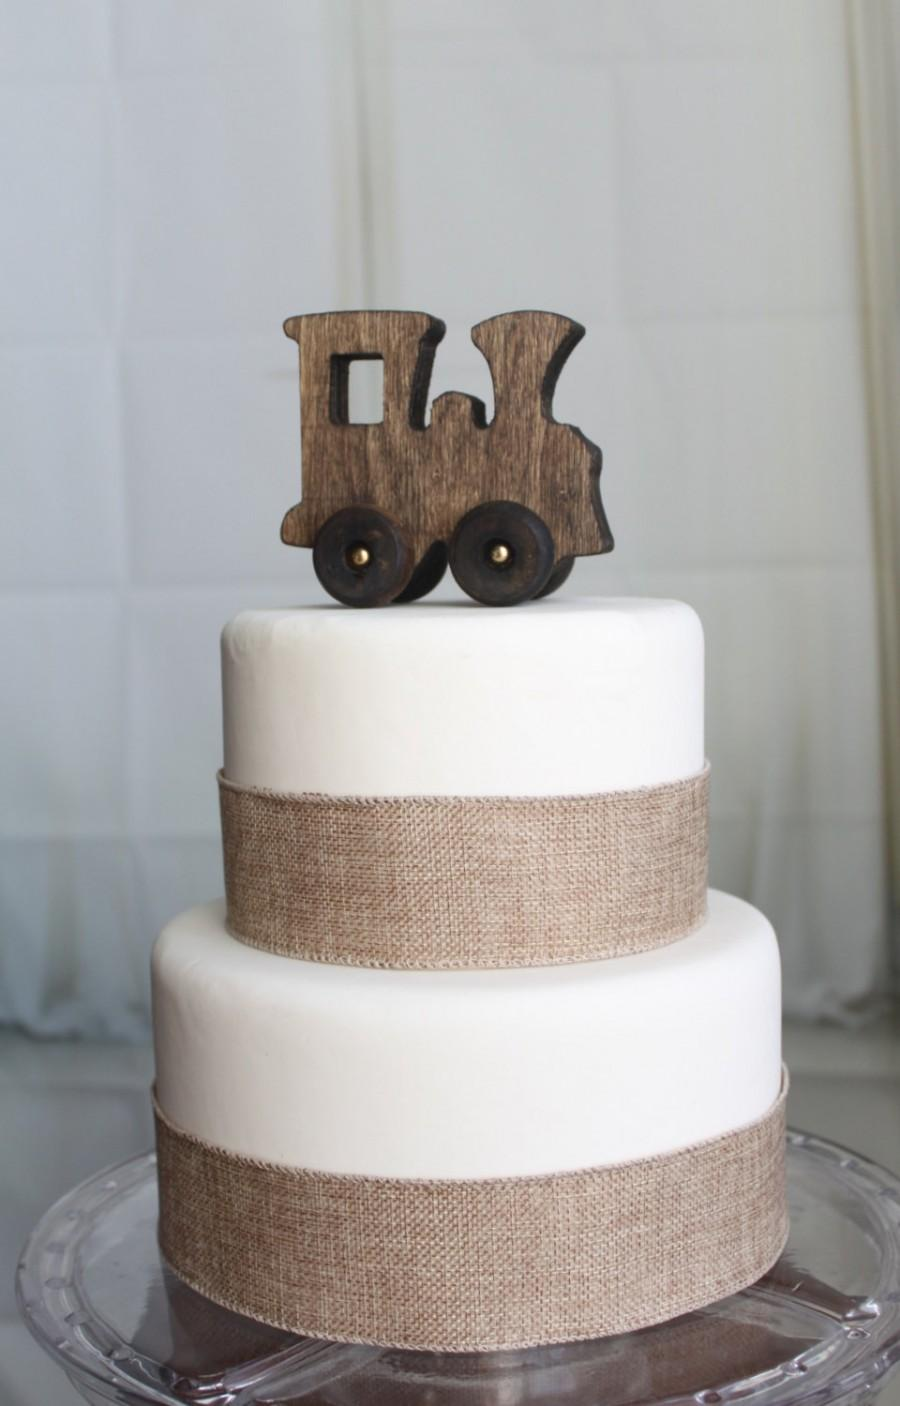 Mariage - Old-fashied Wood Toy Train Cake Topper